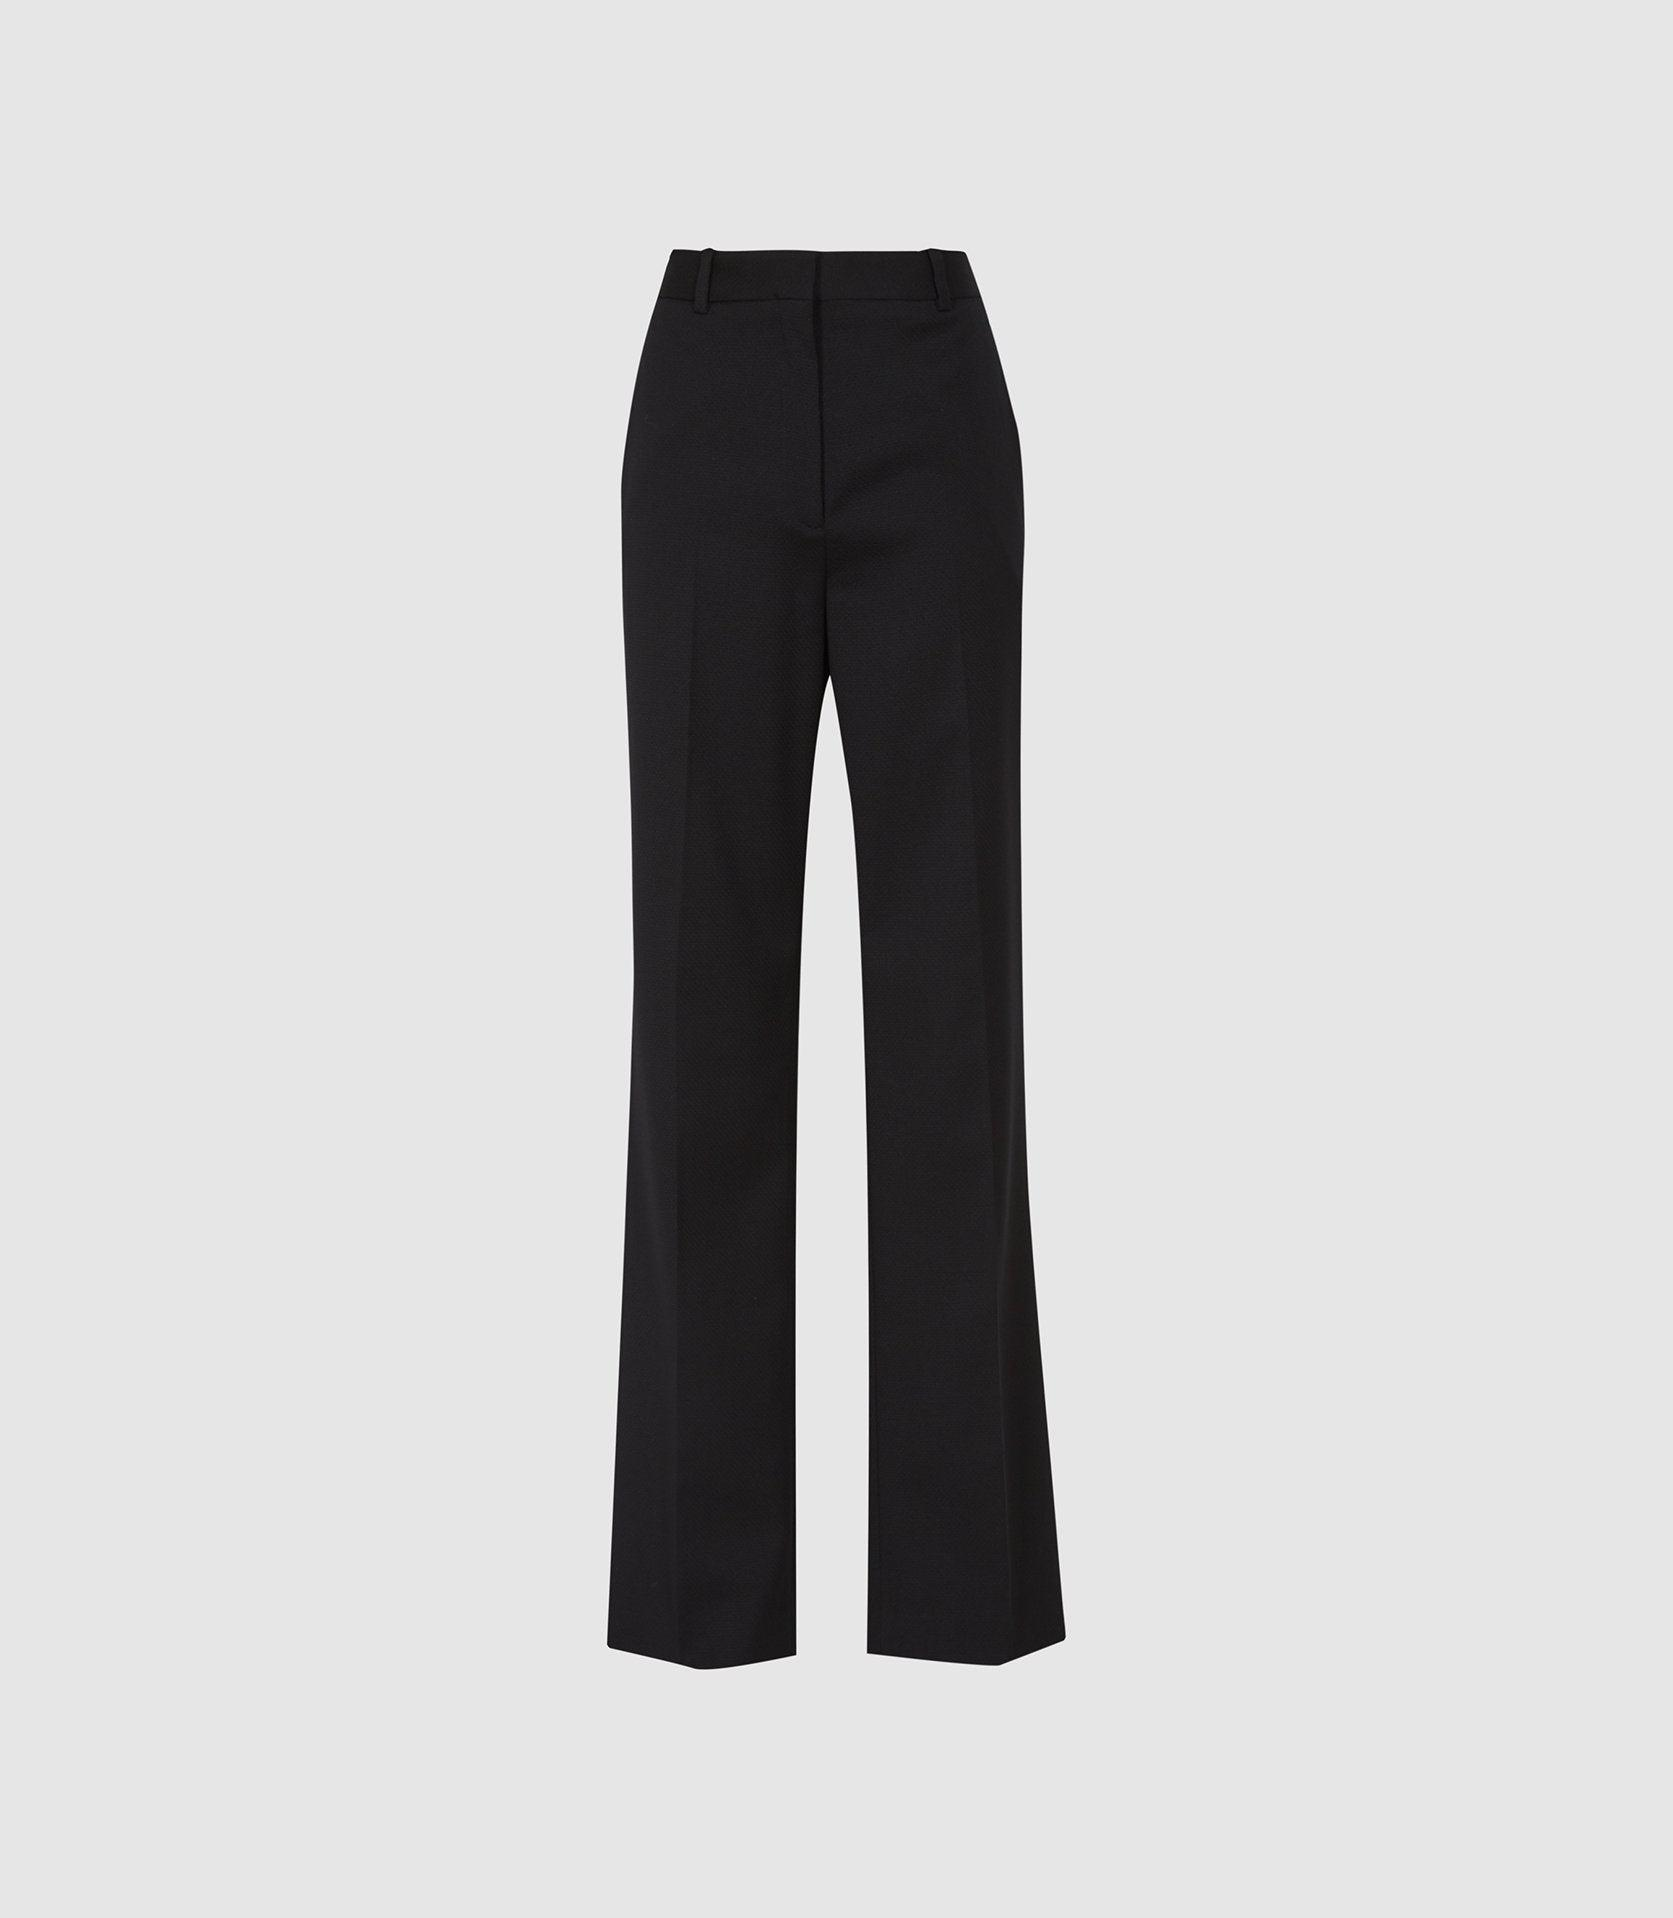 HAYES - WIDE LEG TAILORED PANTS 4